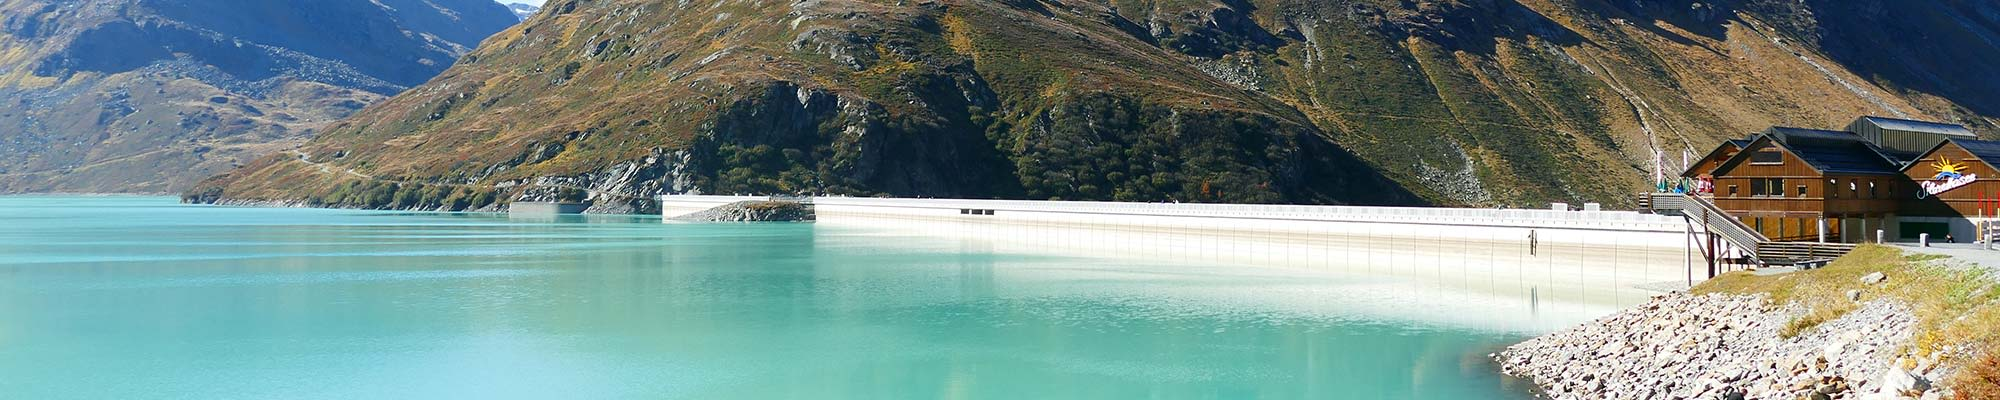 Dam Monitoring—Water Level Stand-Alone Measurement Instruments for Monitoring Dam Water-Level